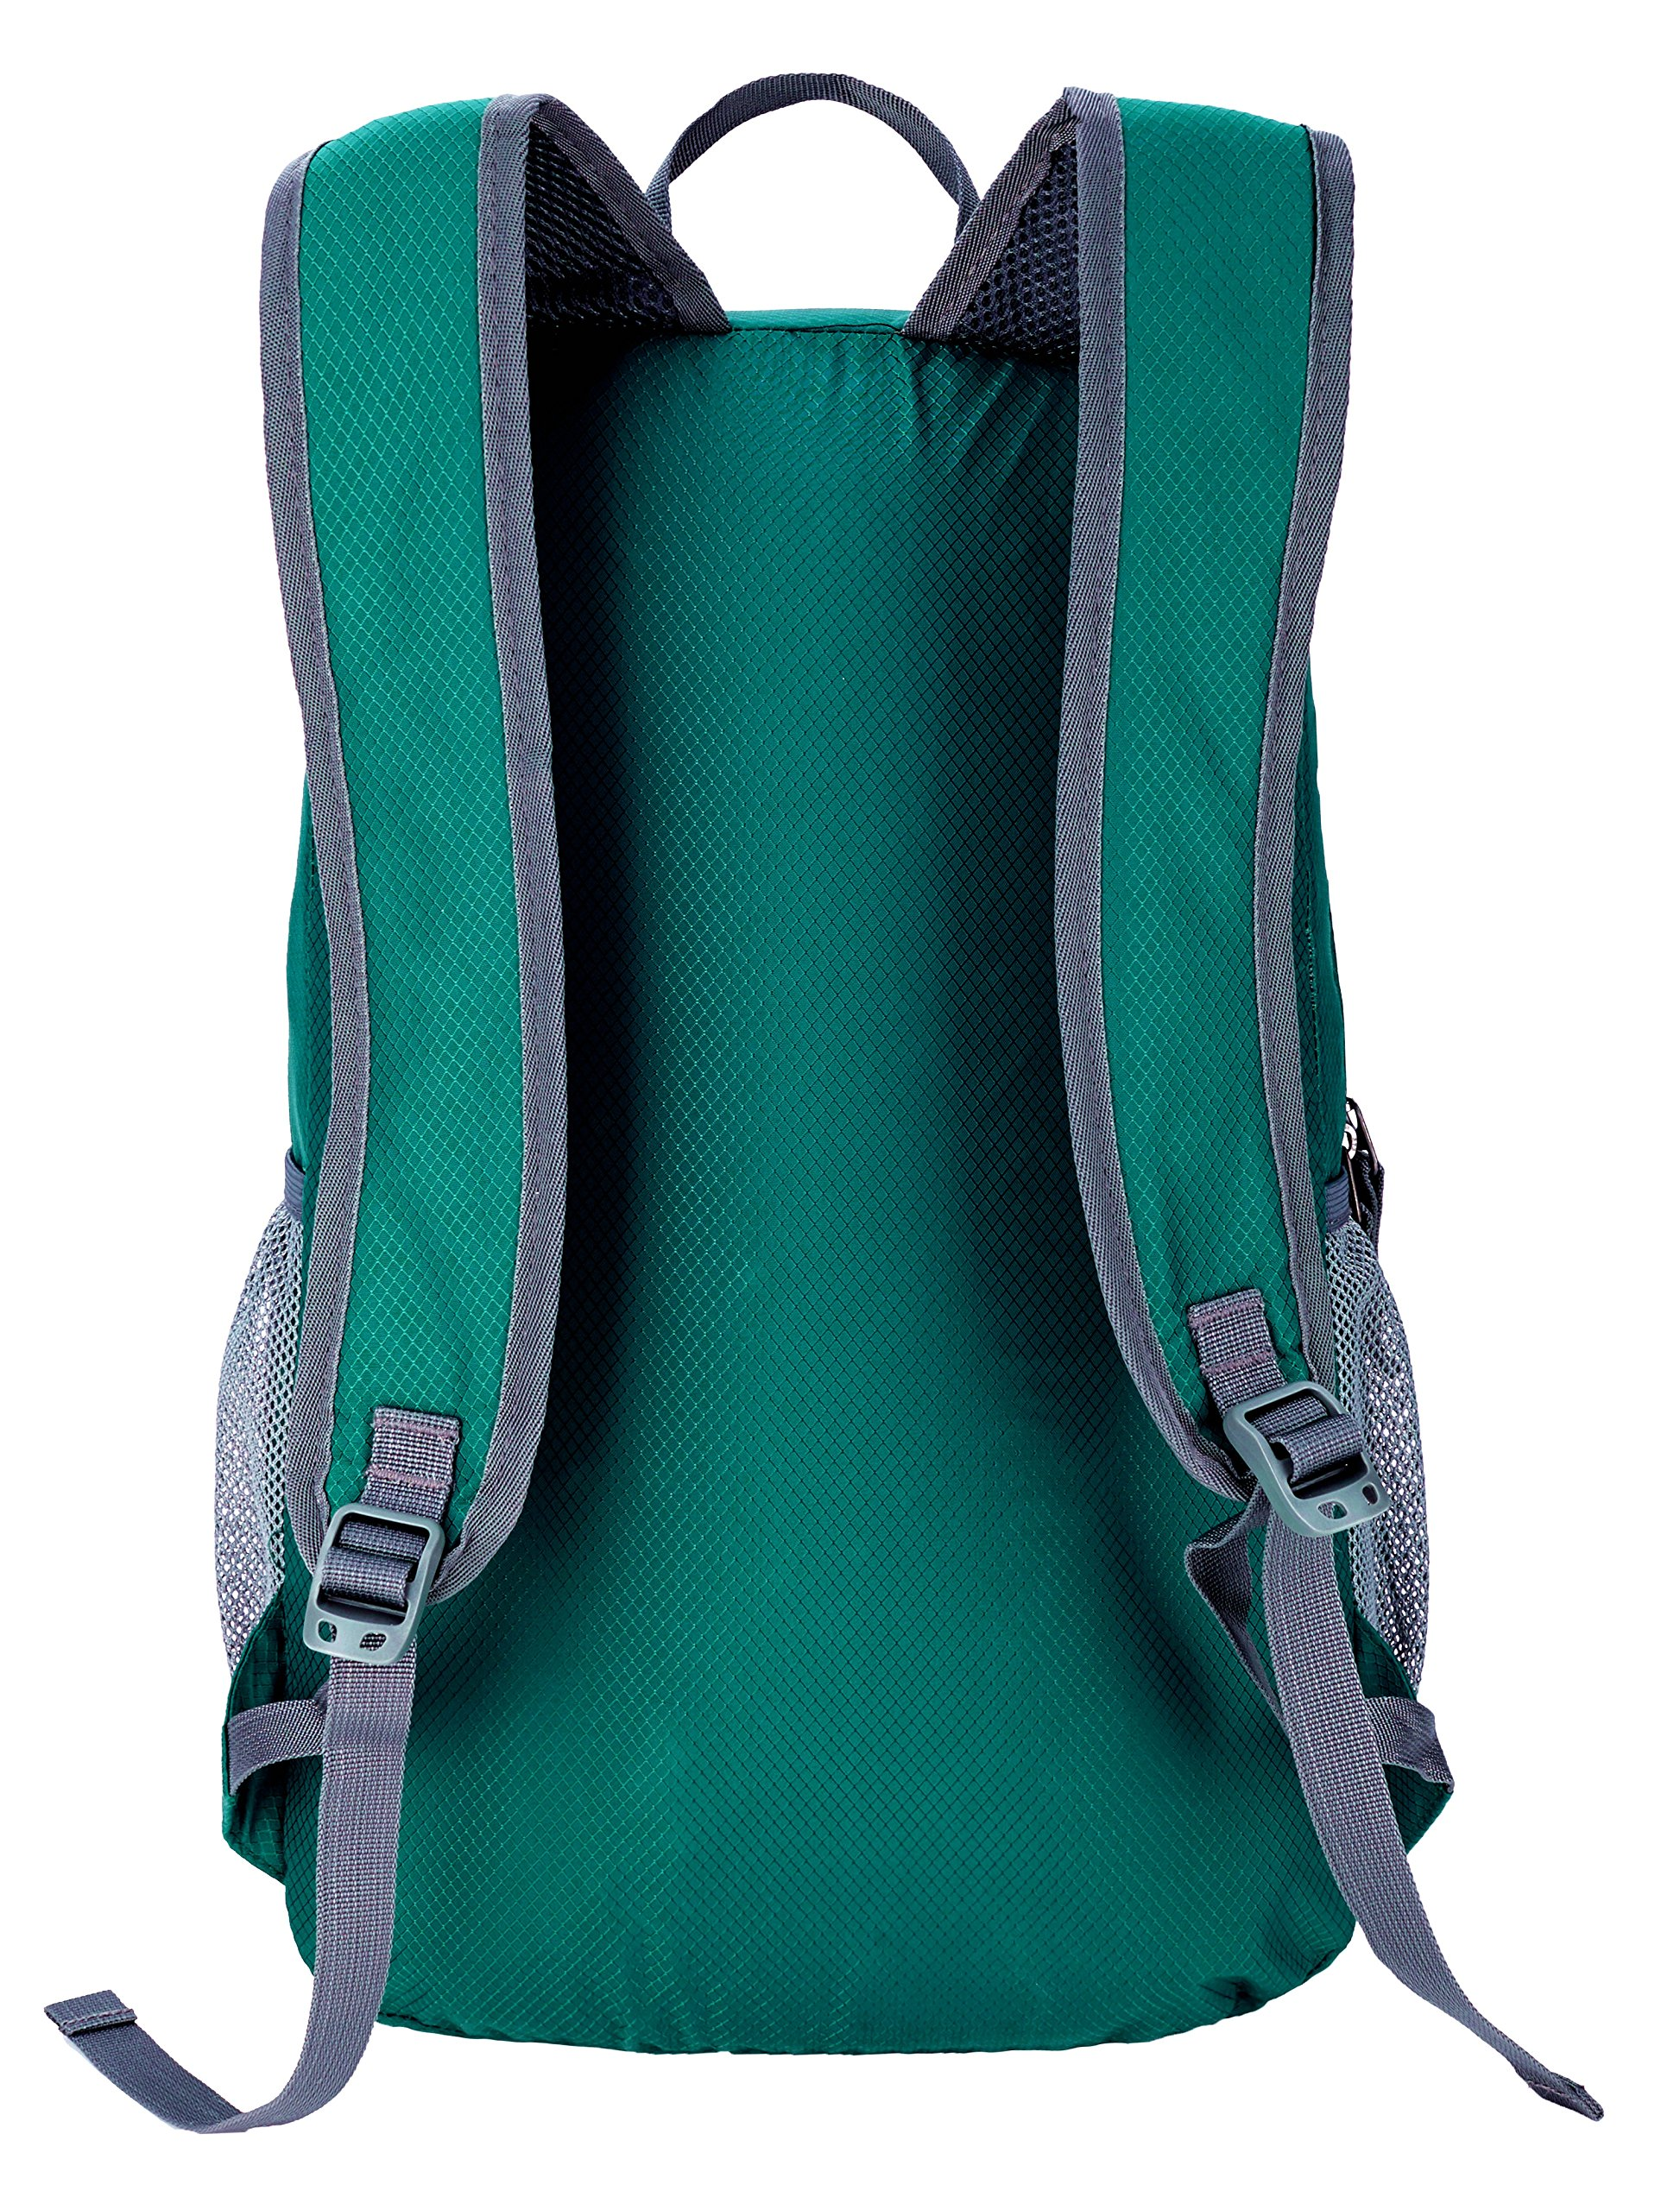 Venture Pal 25L Travel Backpack - Durable Packable Lightweight Small Backpack Women Men (Green) … by Venture Pal (Image #5)